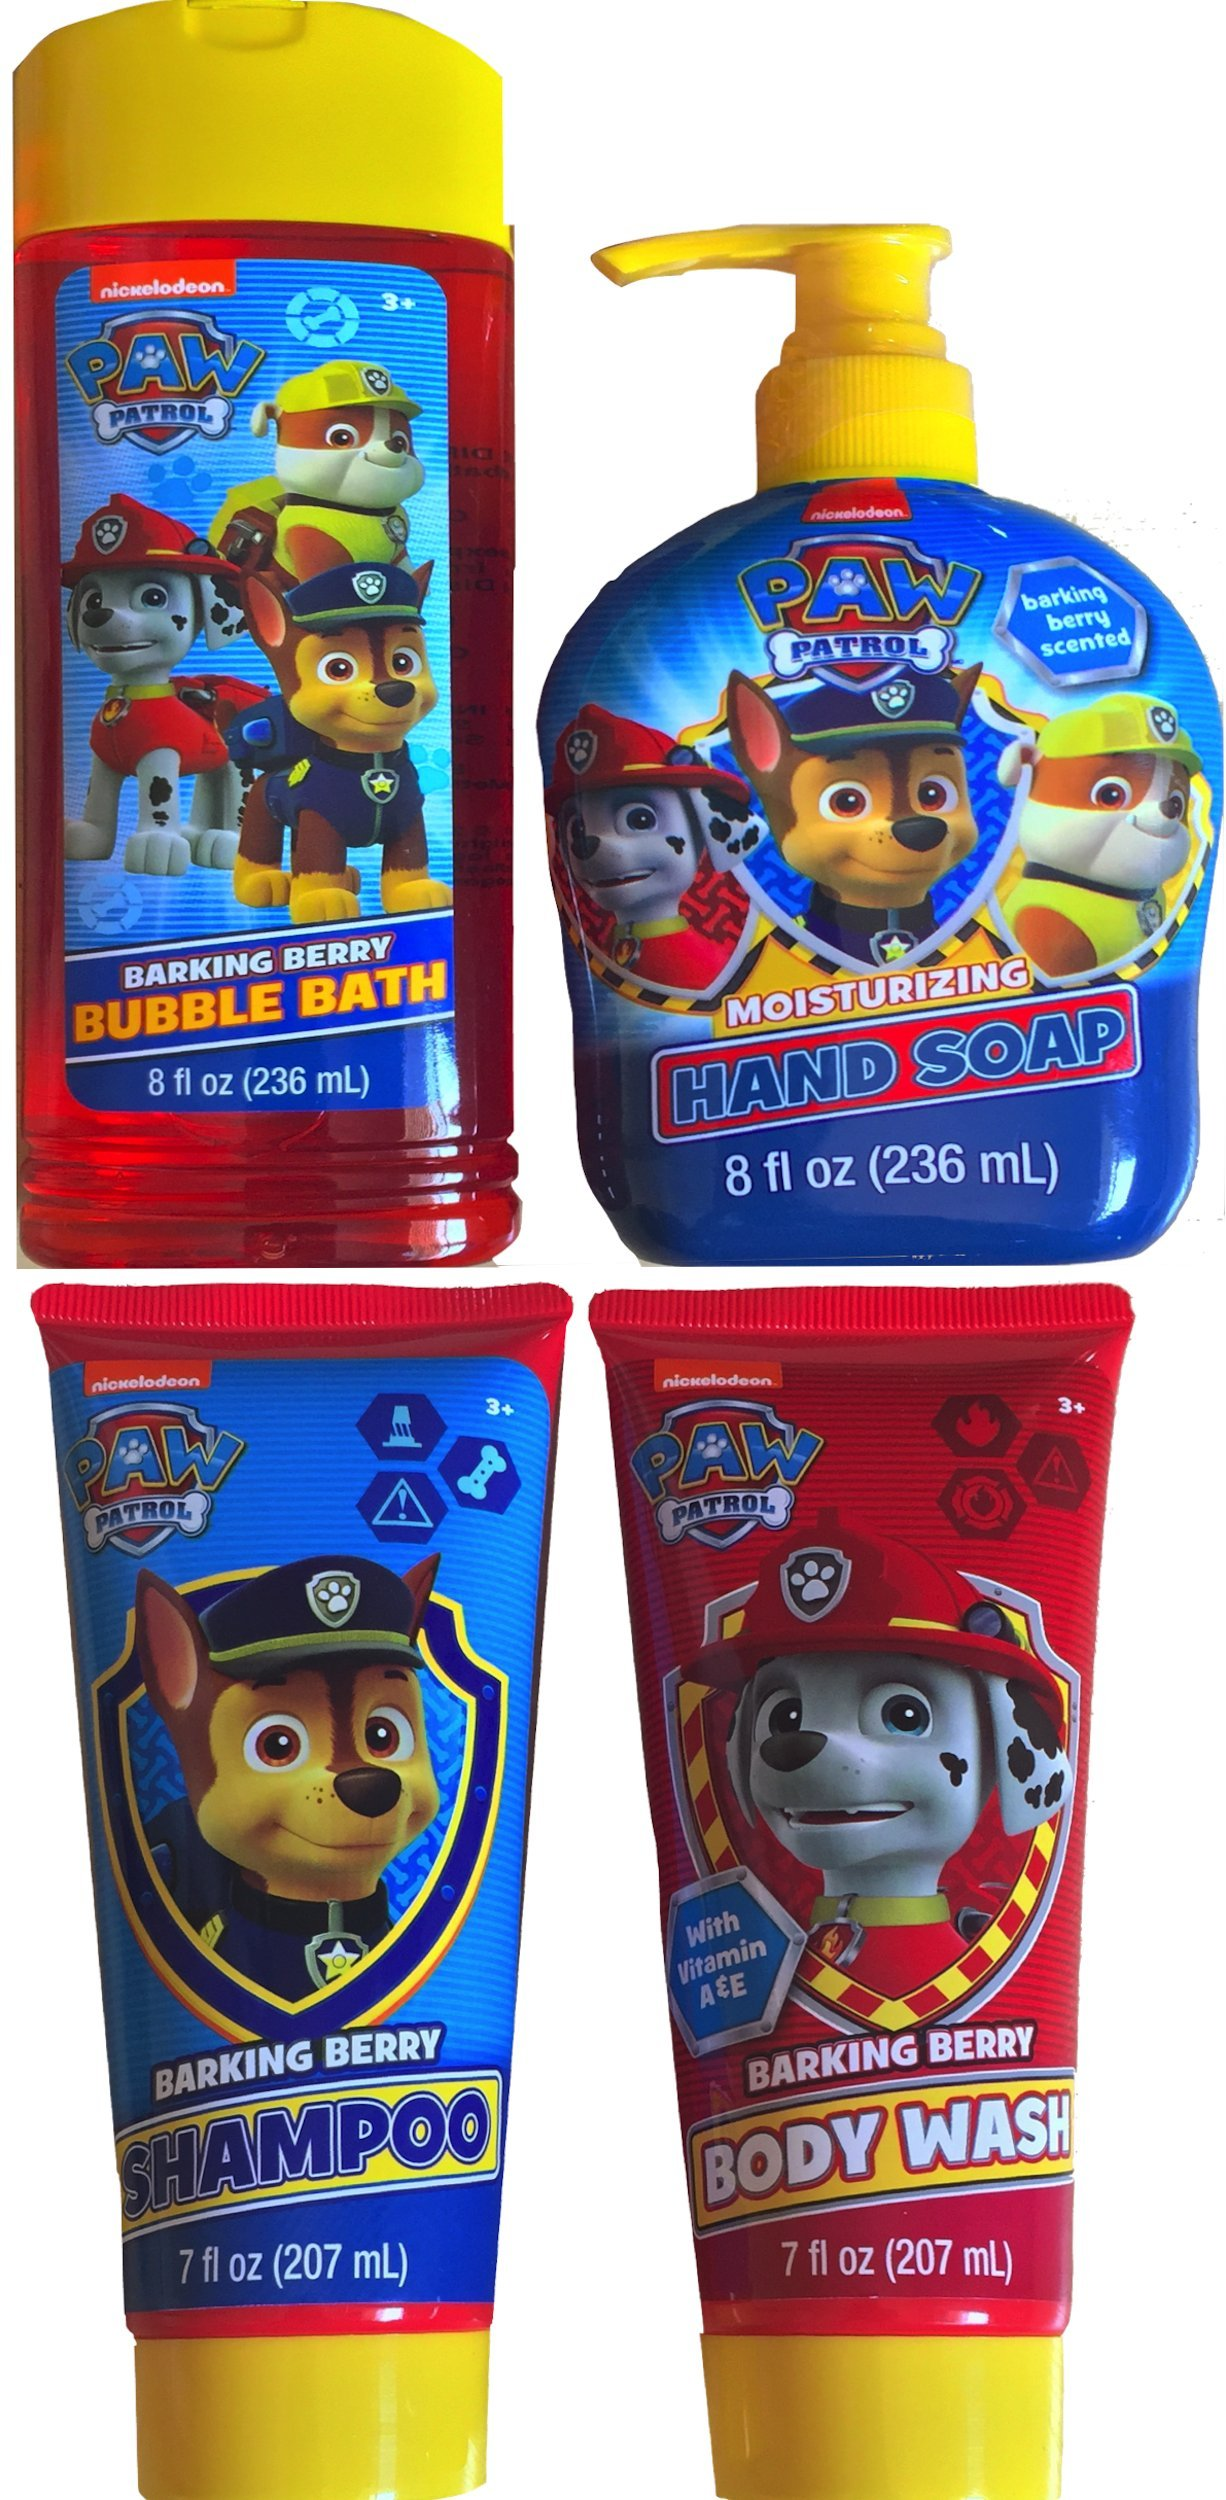 Paw Patrol Bathing Gift Set Includes Paw Patrol Bubble Bath , Barking Shampoo, Barking Berry Body Wash , Barking Moisturizing Hand Soap